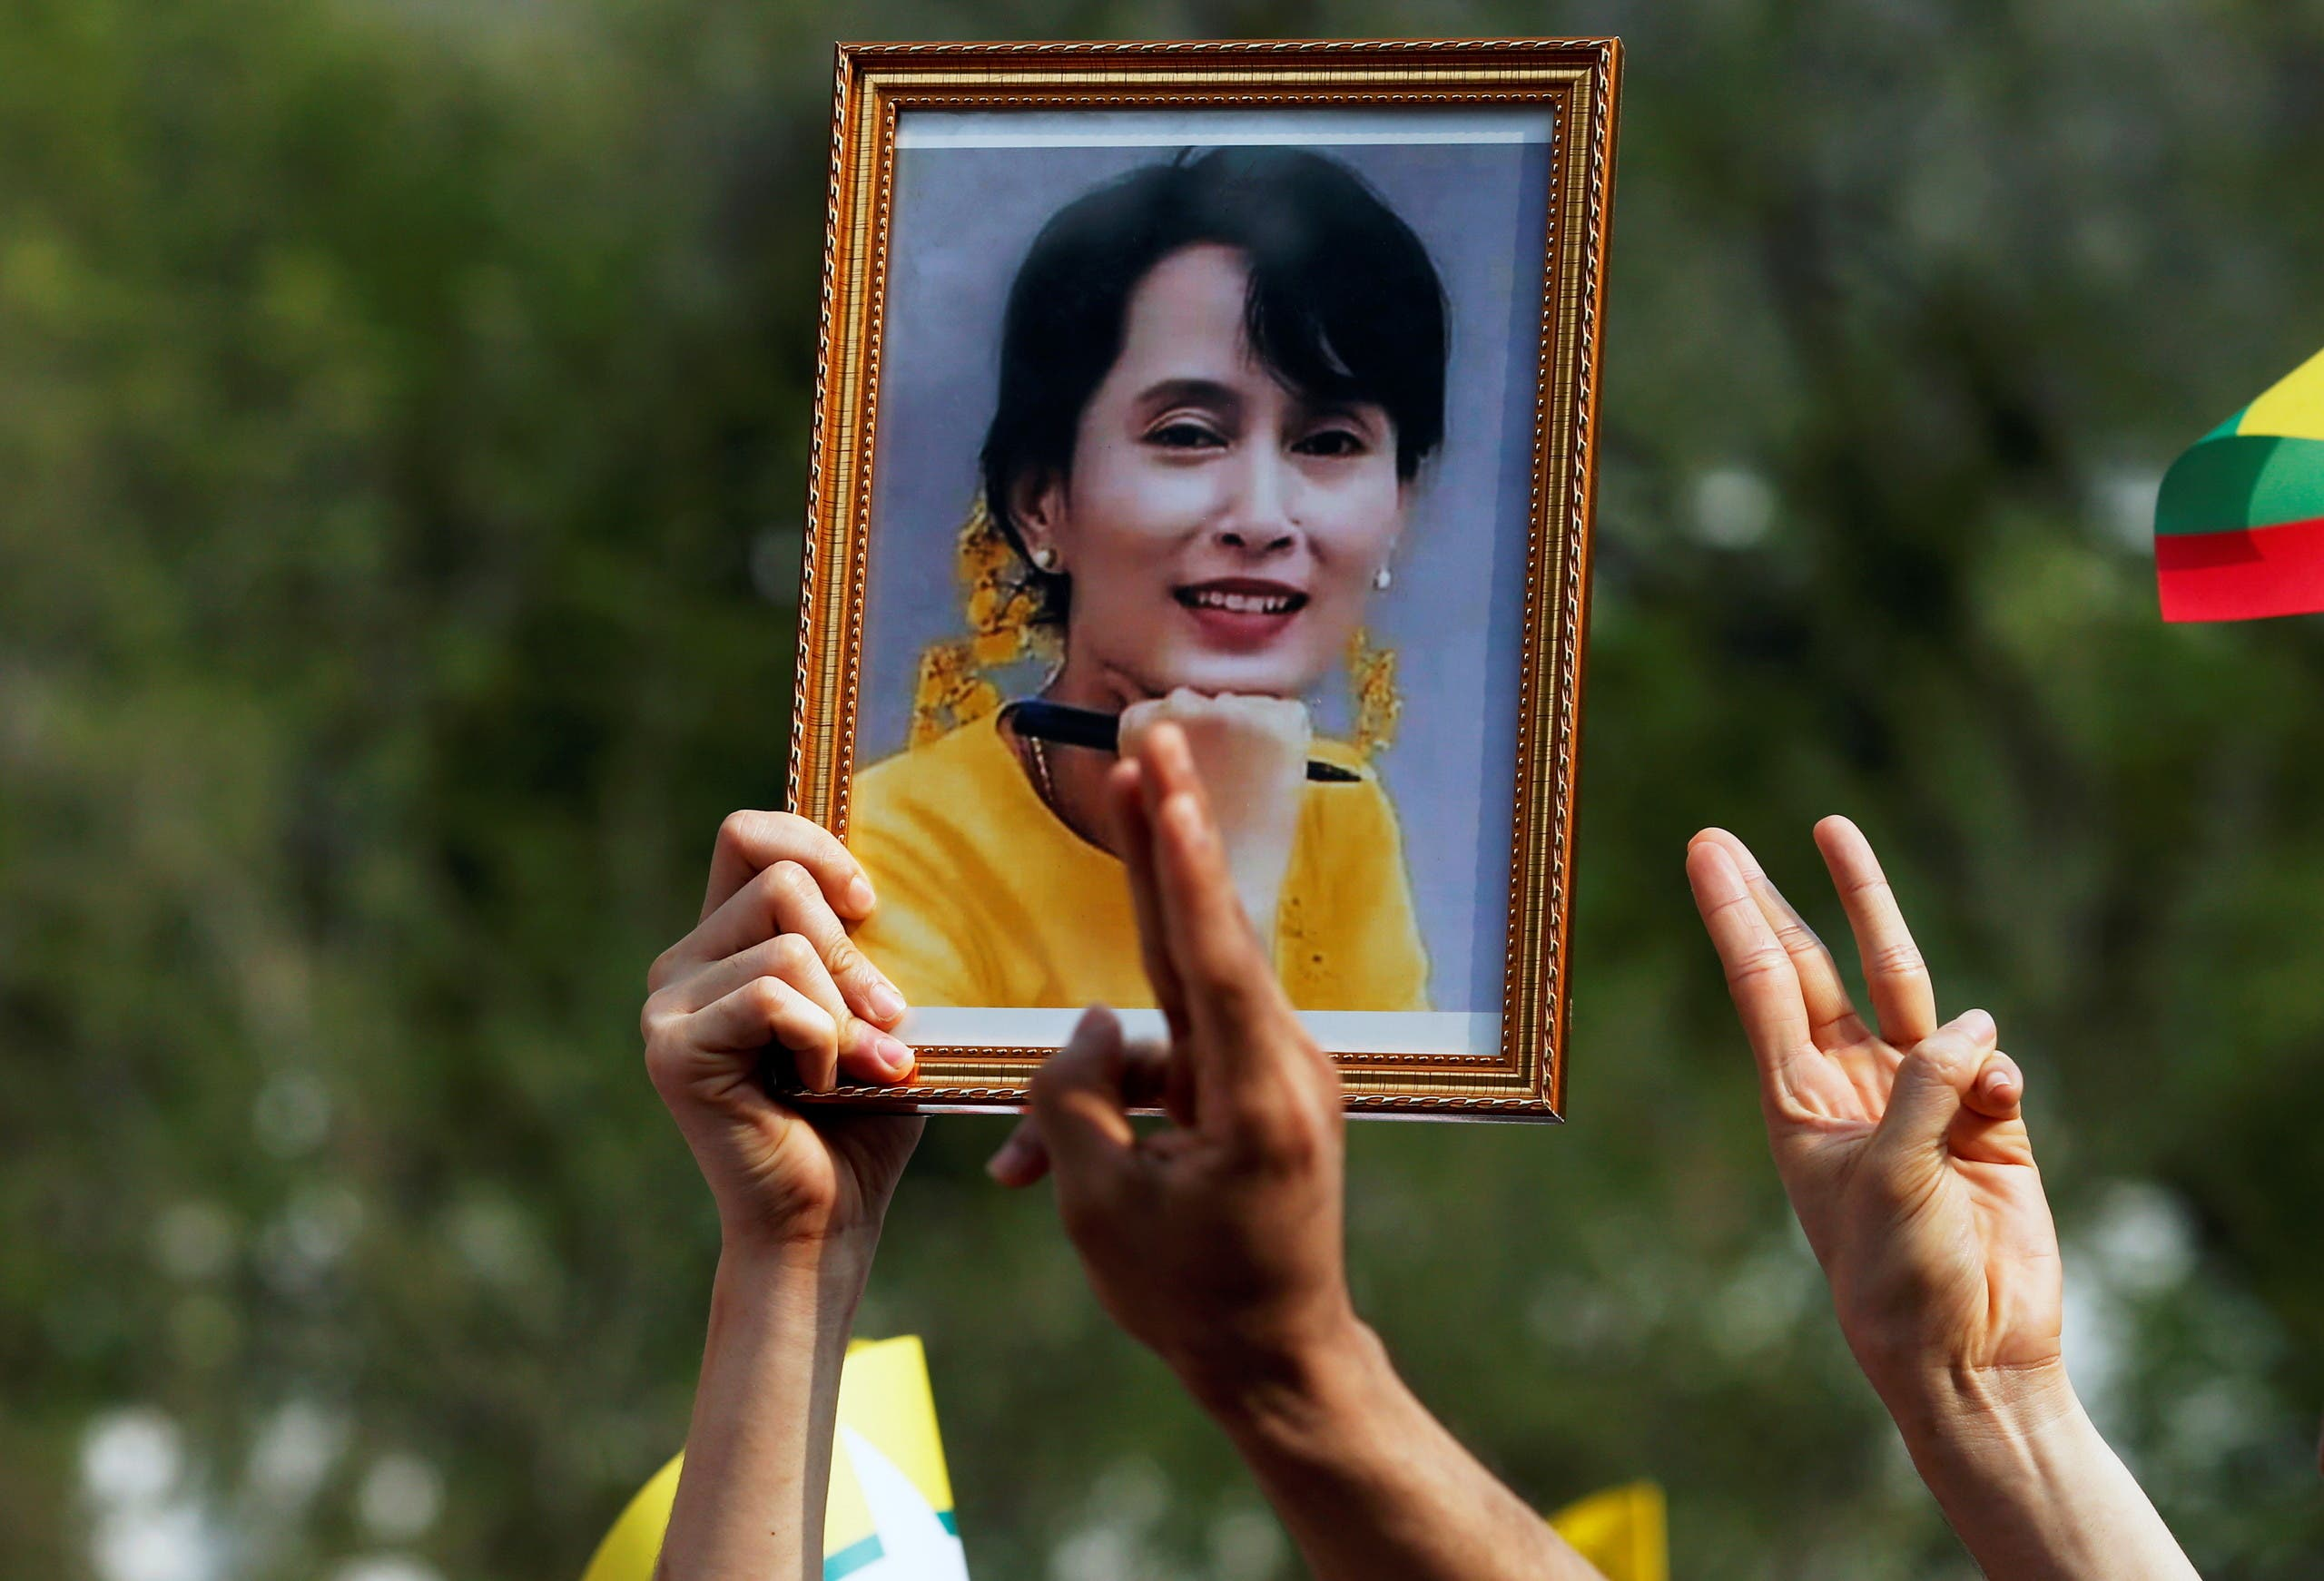 A person holds a picture of leader Aung San Suu Kyi as Myanmar citizens protest against the military coup in front of the UN office in Bangkok, Thailand February 22, 2021. (File photo: Reuters)